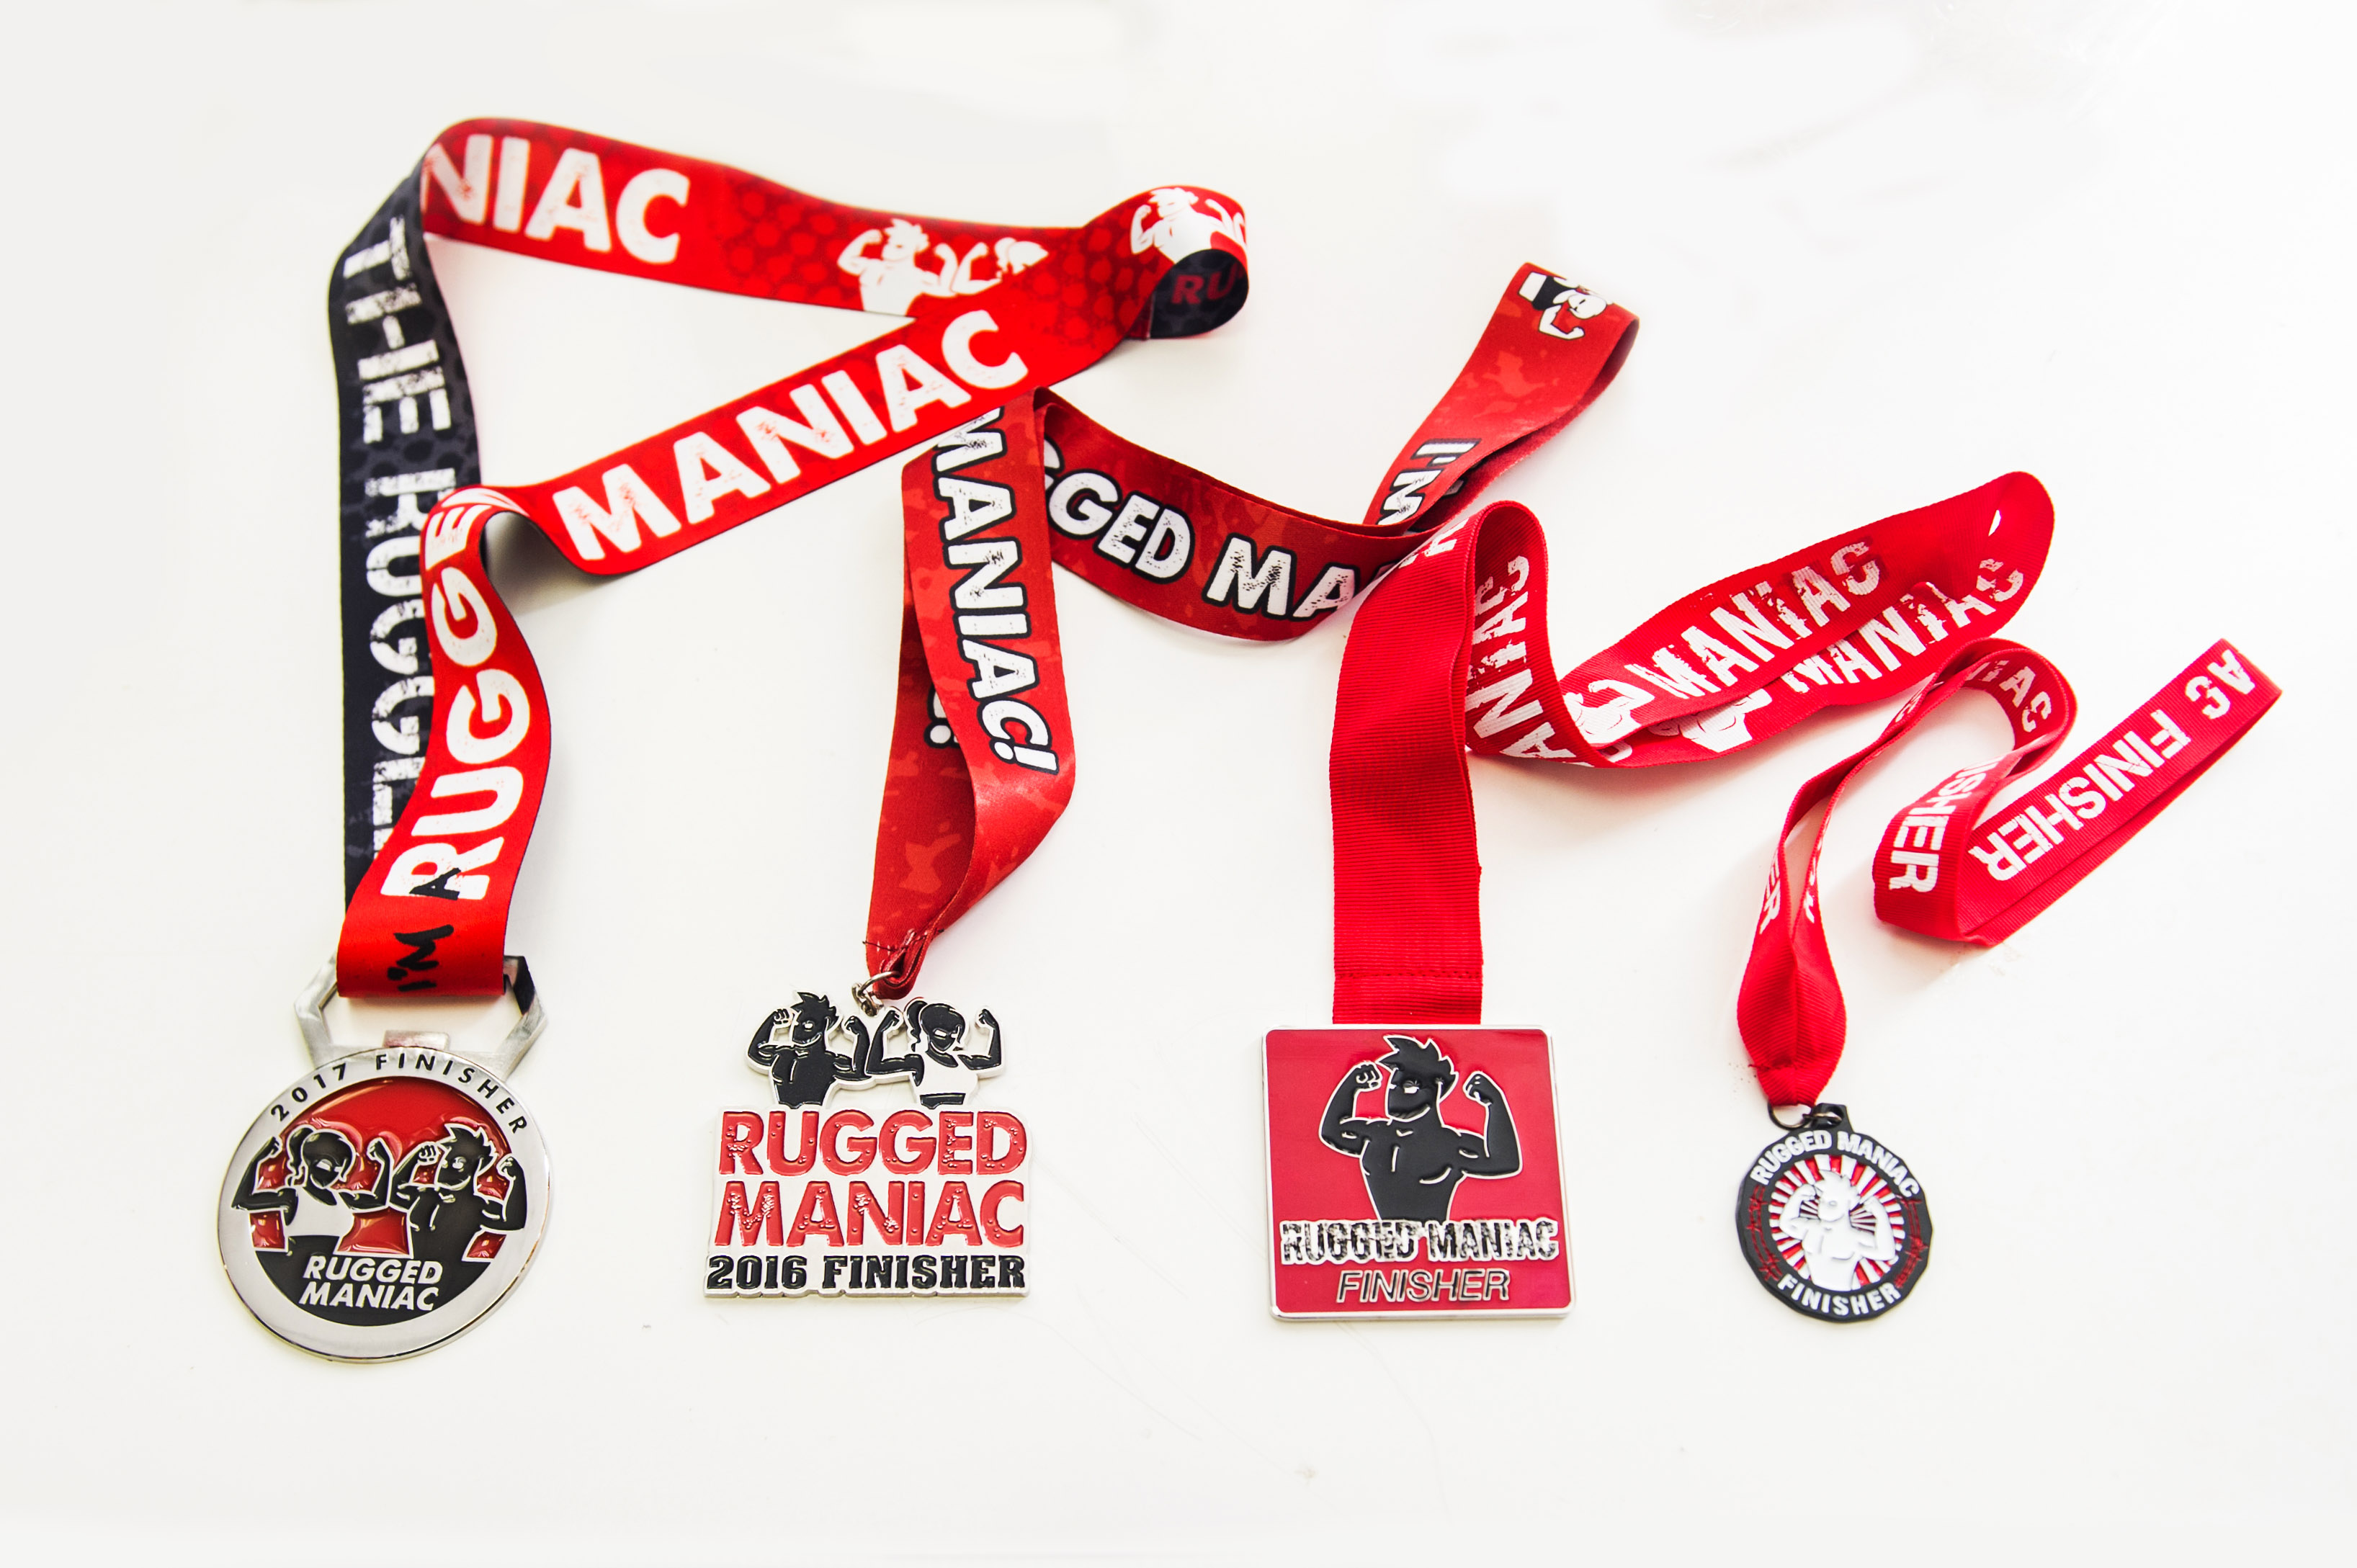 File Rugged Maniac Finisher Medals History 2016 2017 Jpg